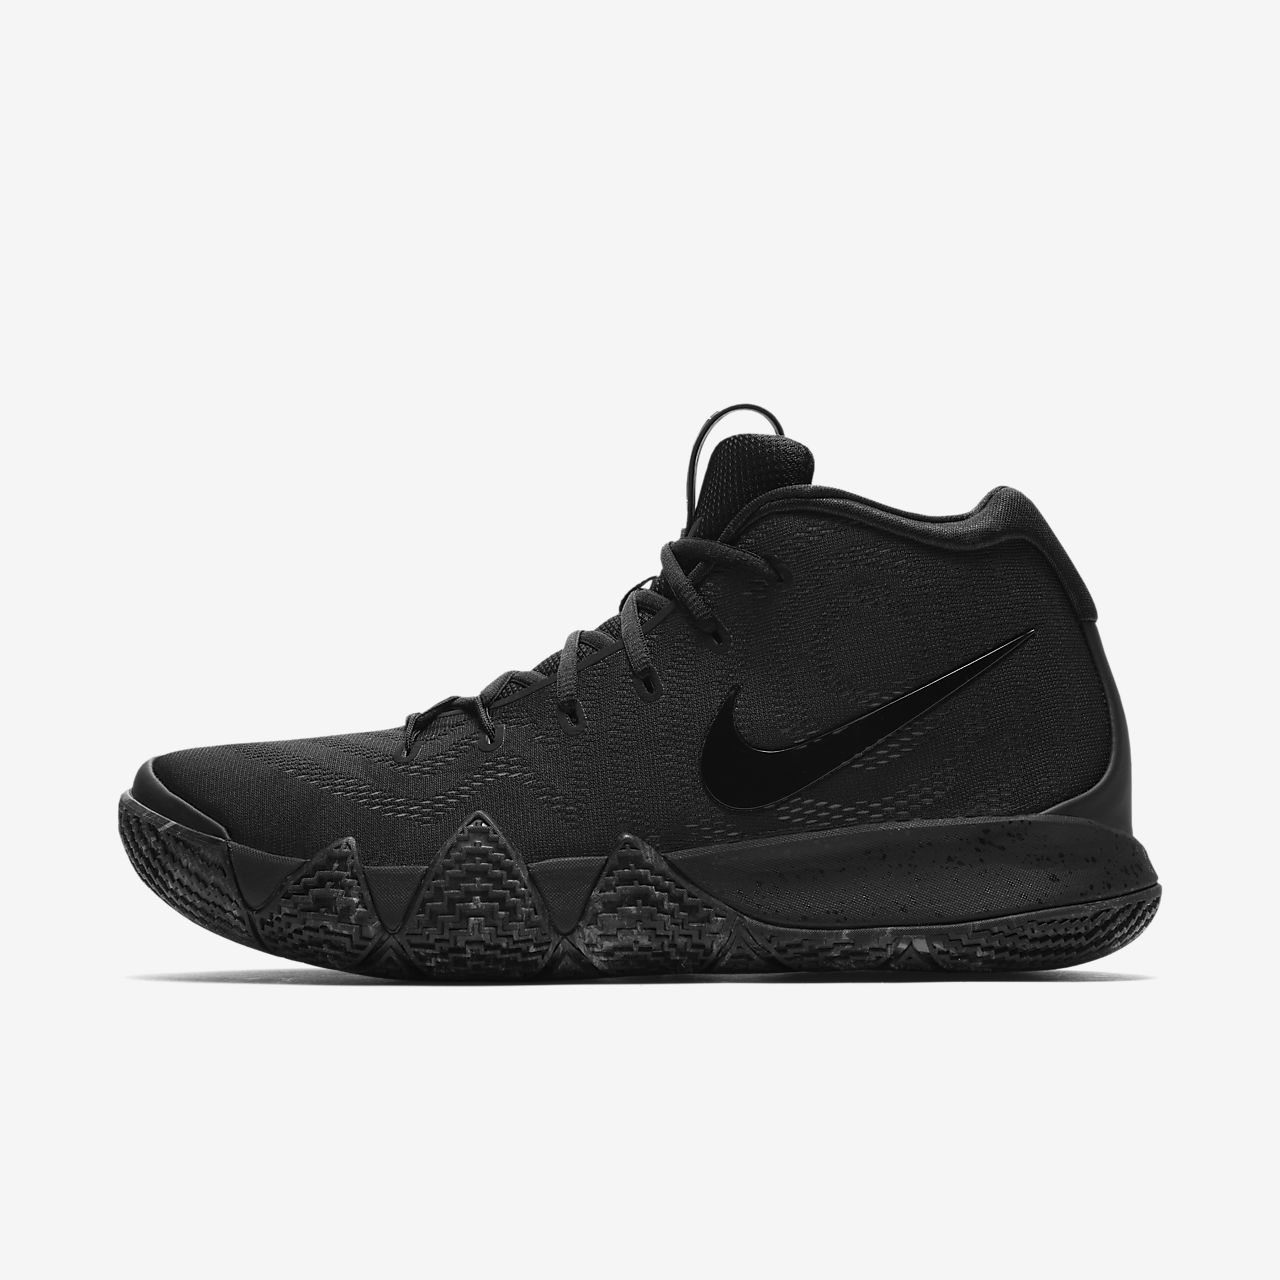 watch efae1 ea082 Kyrie 4 Basketball Shoe. Nike.com CA